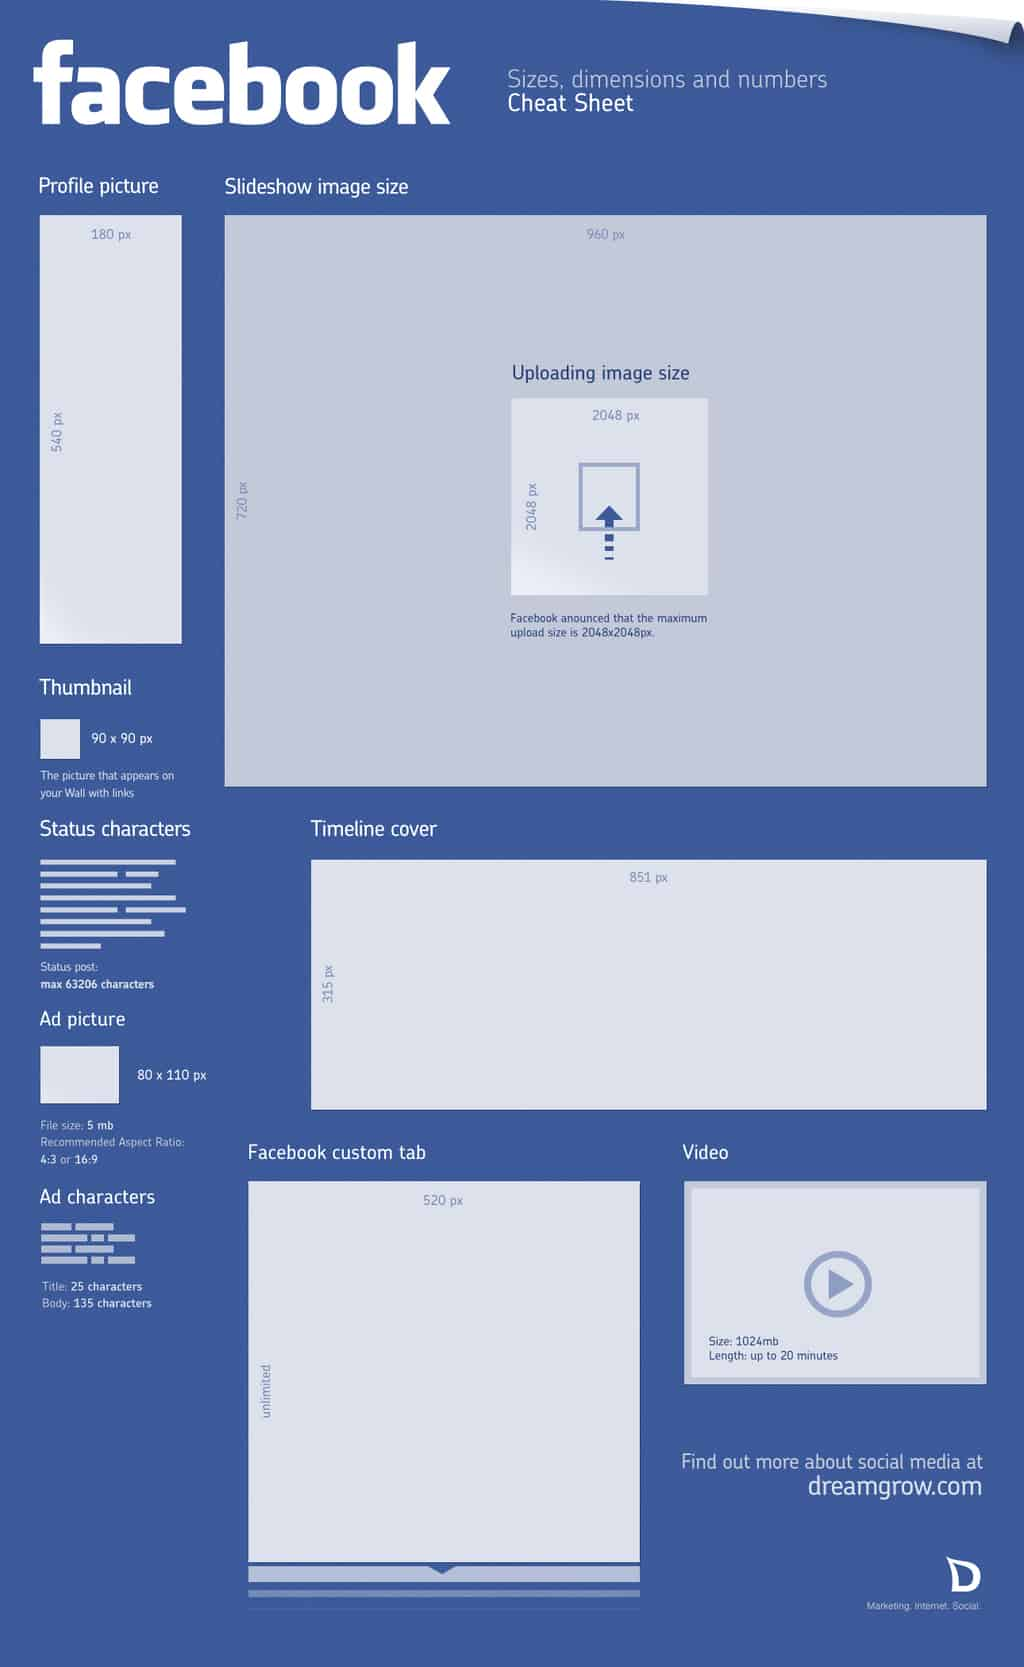 facebook-cheat-sheet-sizes-and-dimensions-1to1.jpg